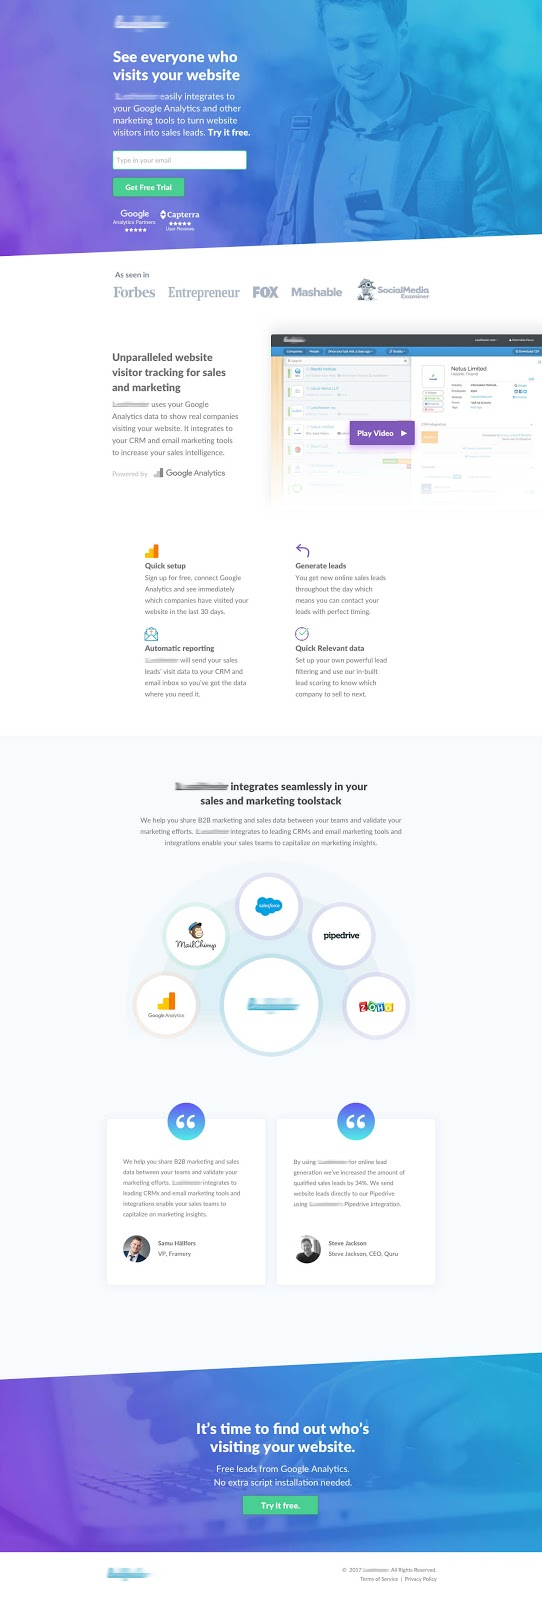 SaaS visitor tracking landing page designed by Michael Musa